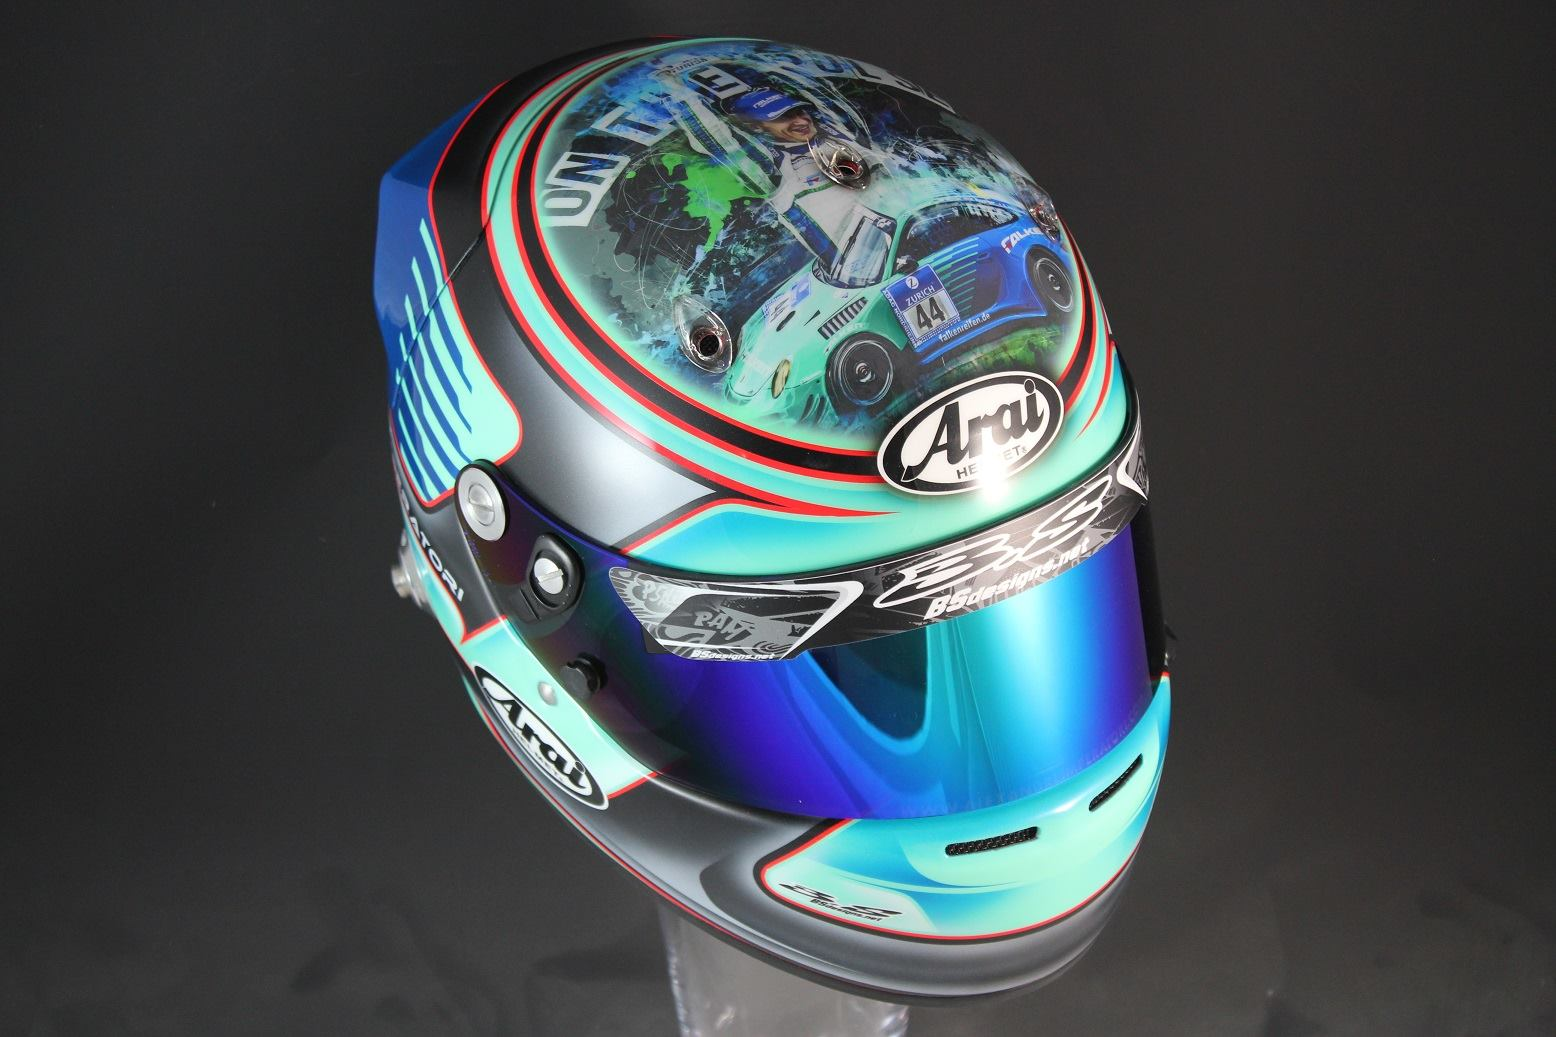 Helm 37 arai gp 6 a imperatori 2016 by bs designs for Helm design